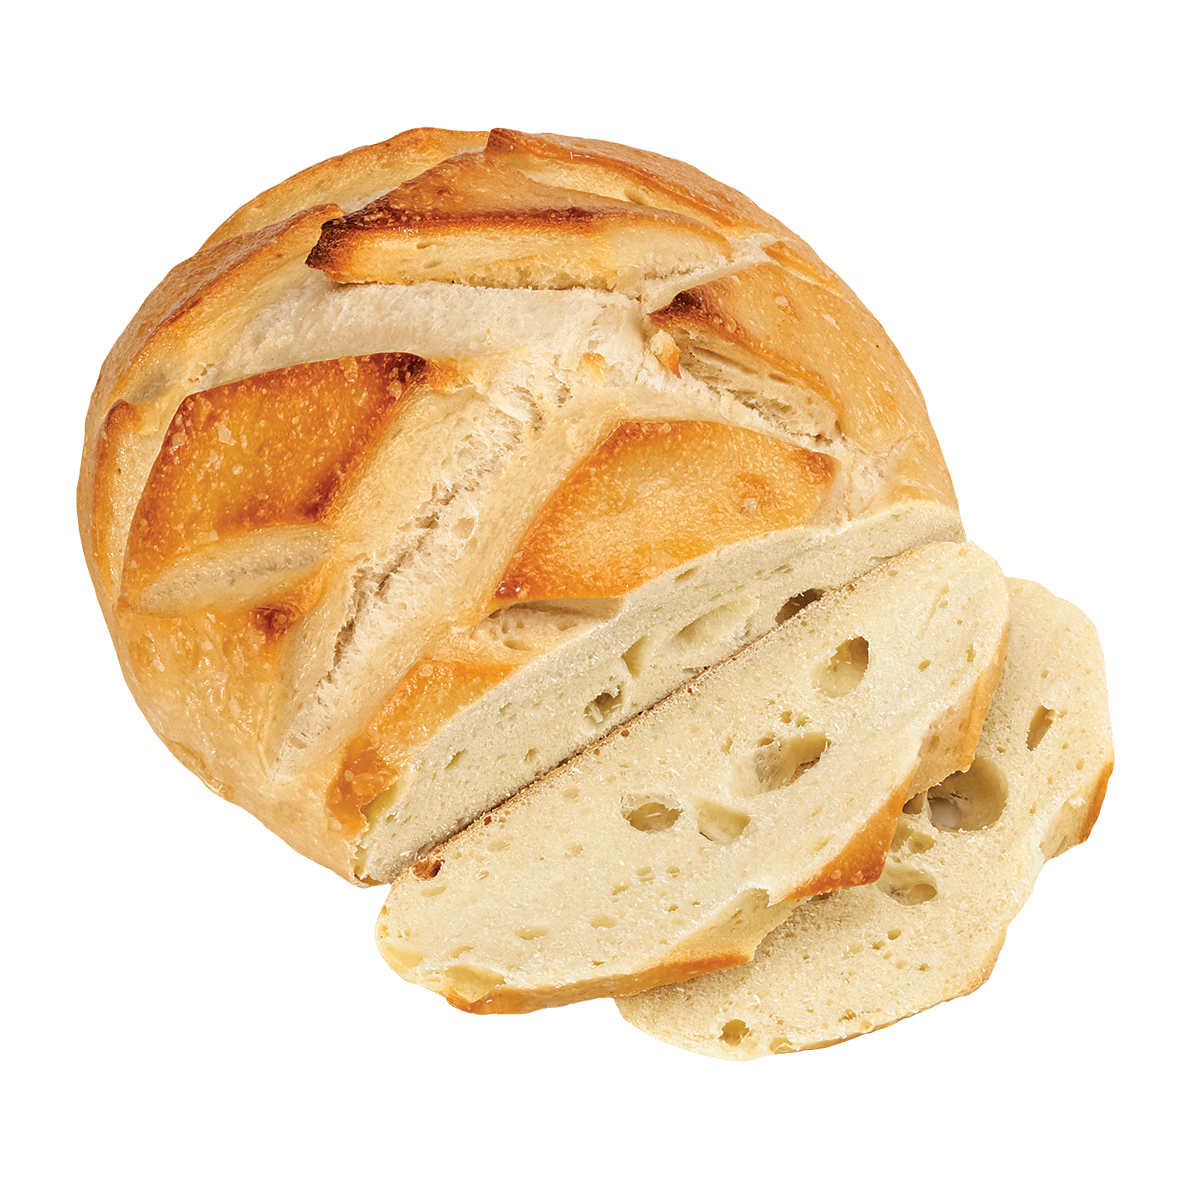 Grilled Hy-Vee Bakery Sourdough Bread Slices